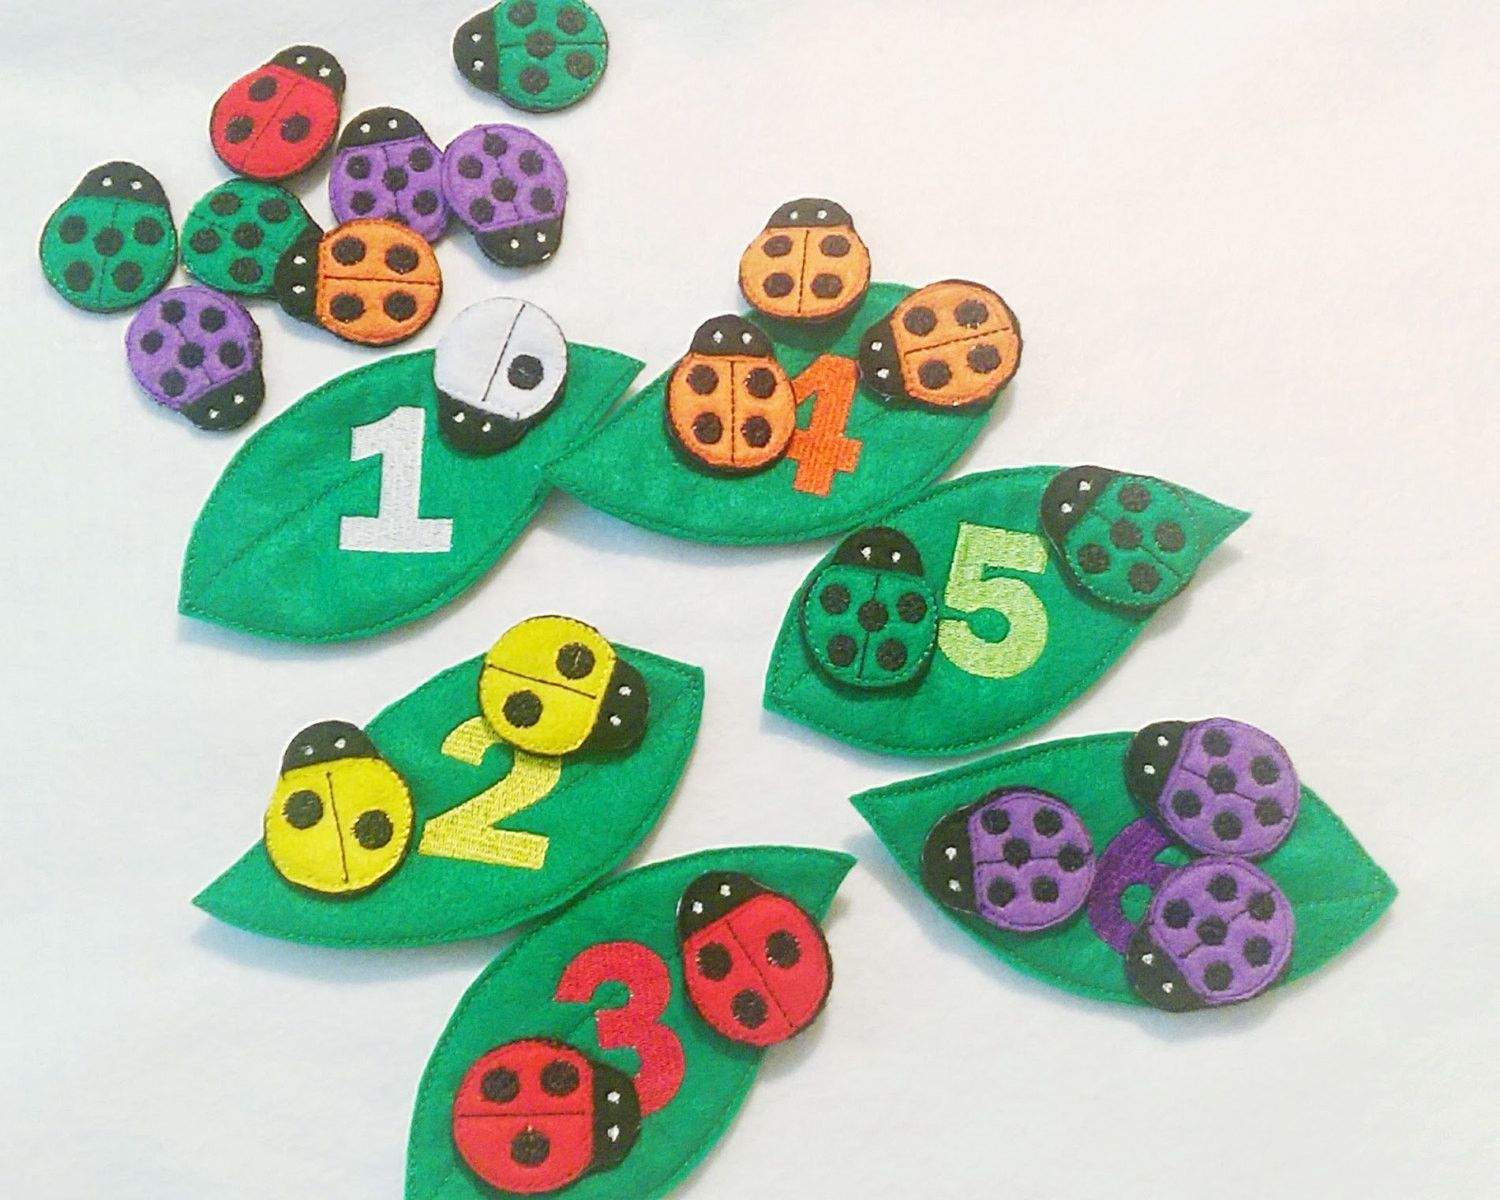 Felt Ladybug Counting And Color Matching Game Perfect For